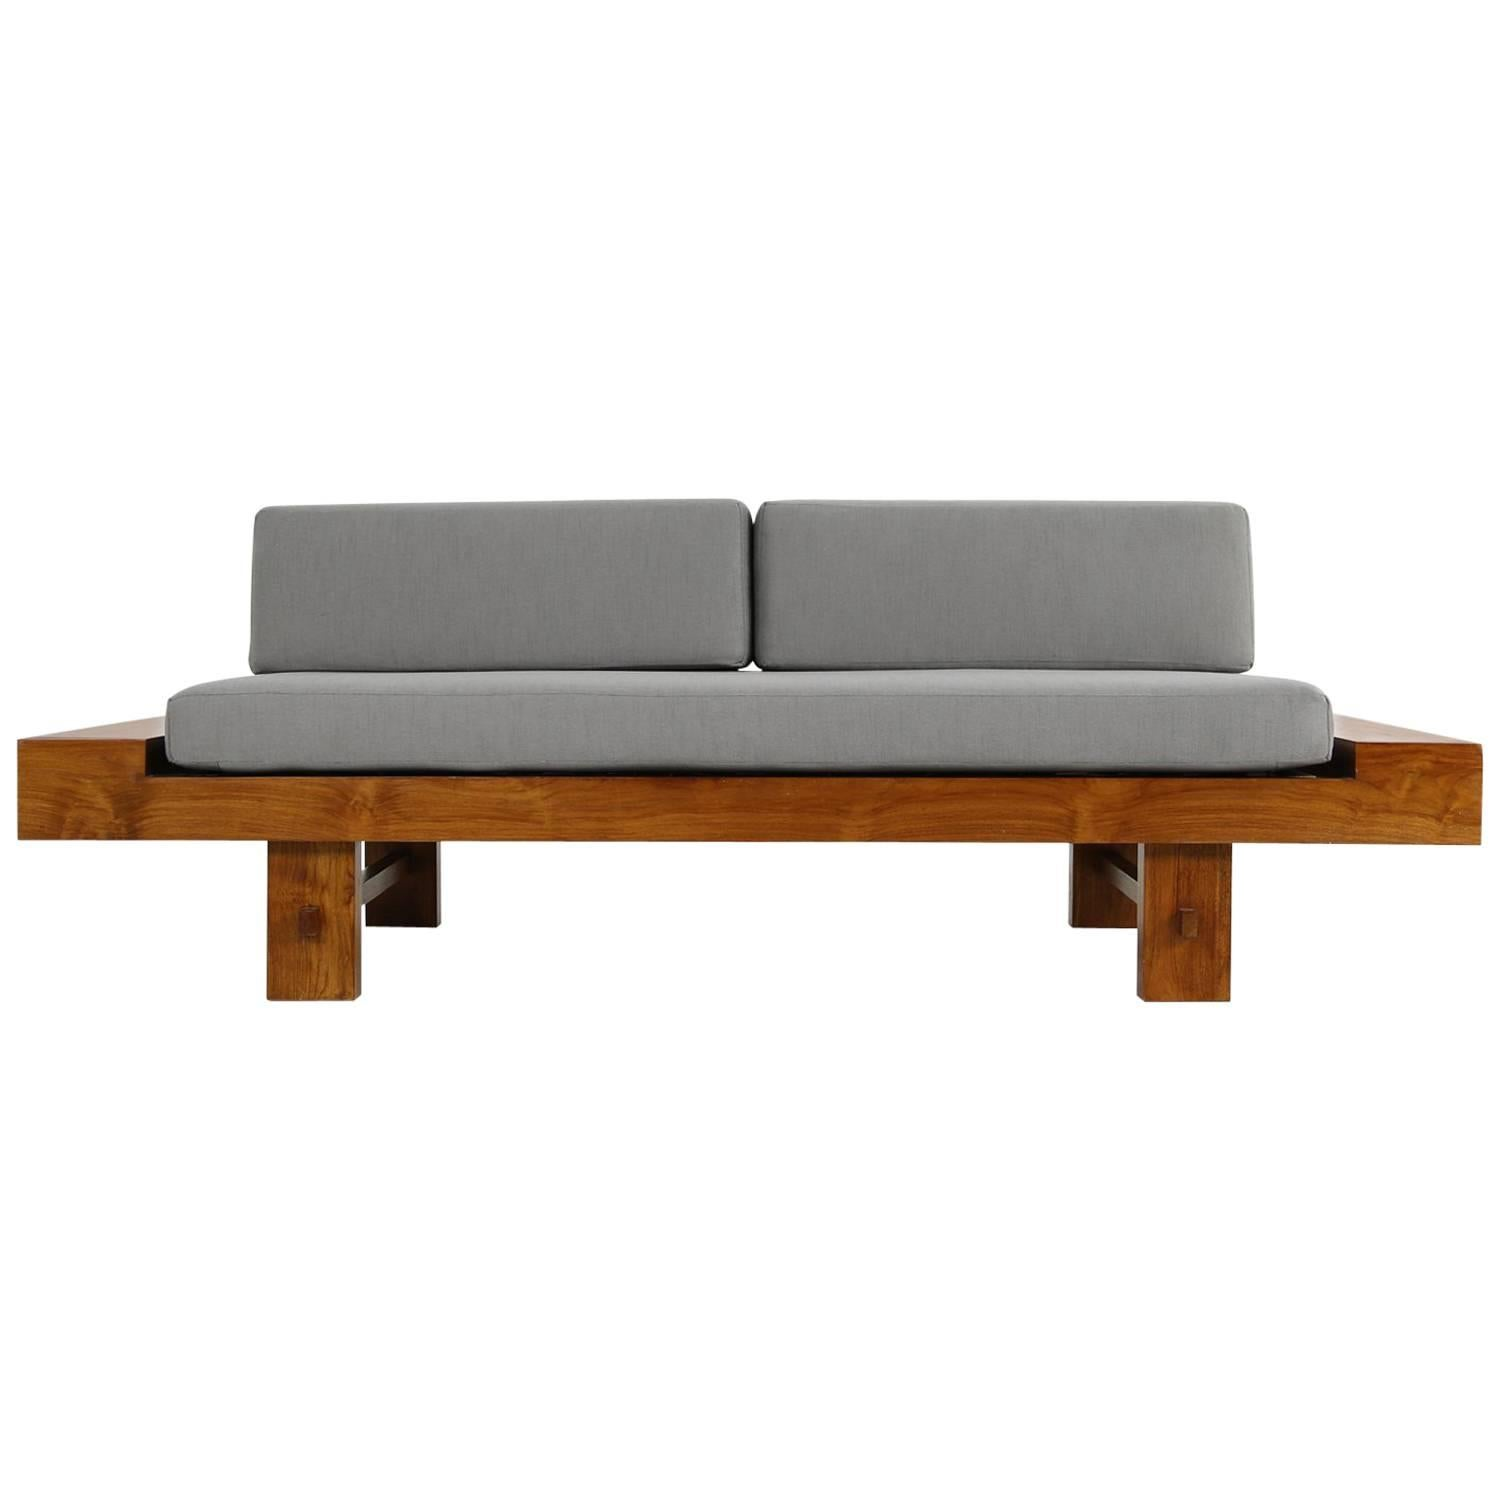 Unique Solid Balinese Teak Wood 1970s Daybed Sofa with New Grey Upholstery